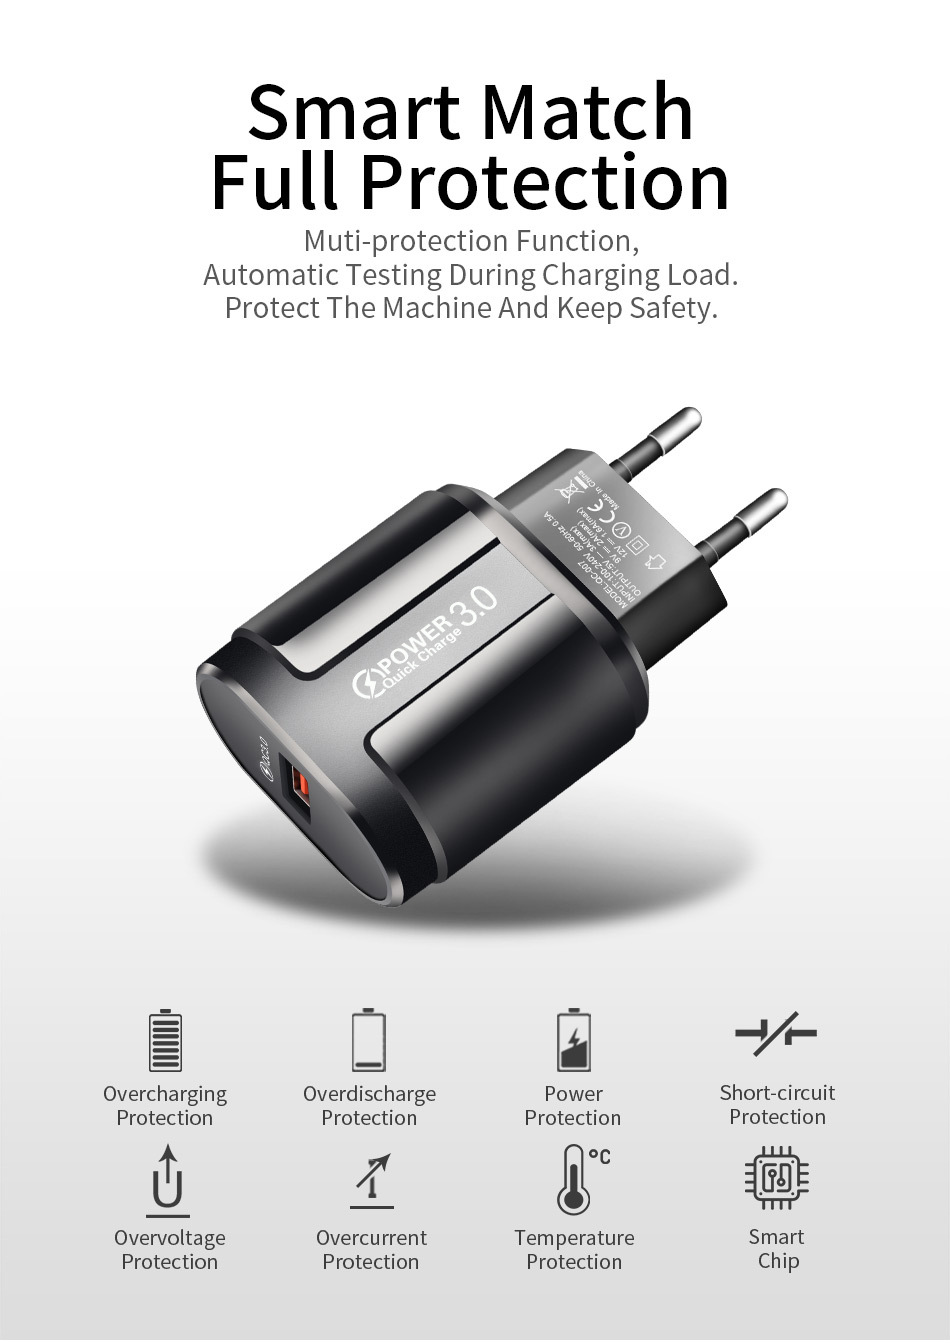 UC3746 Charger Smart Match, Full Protection